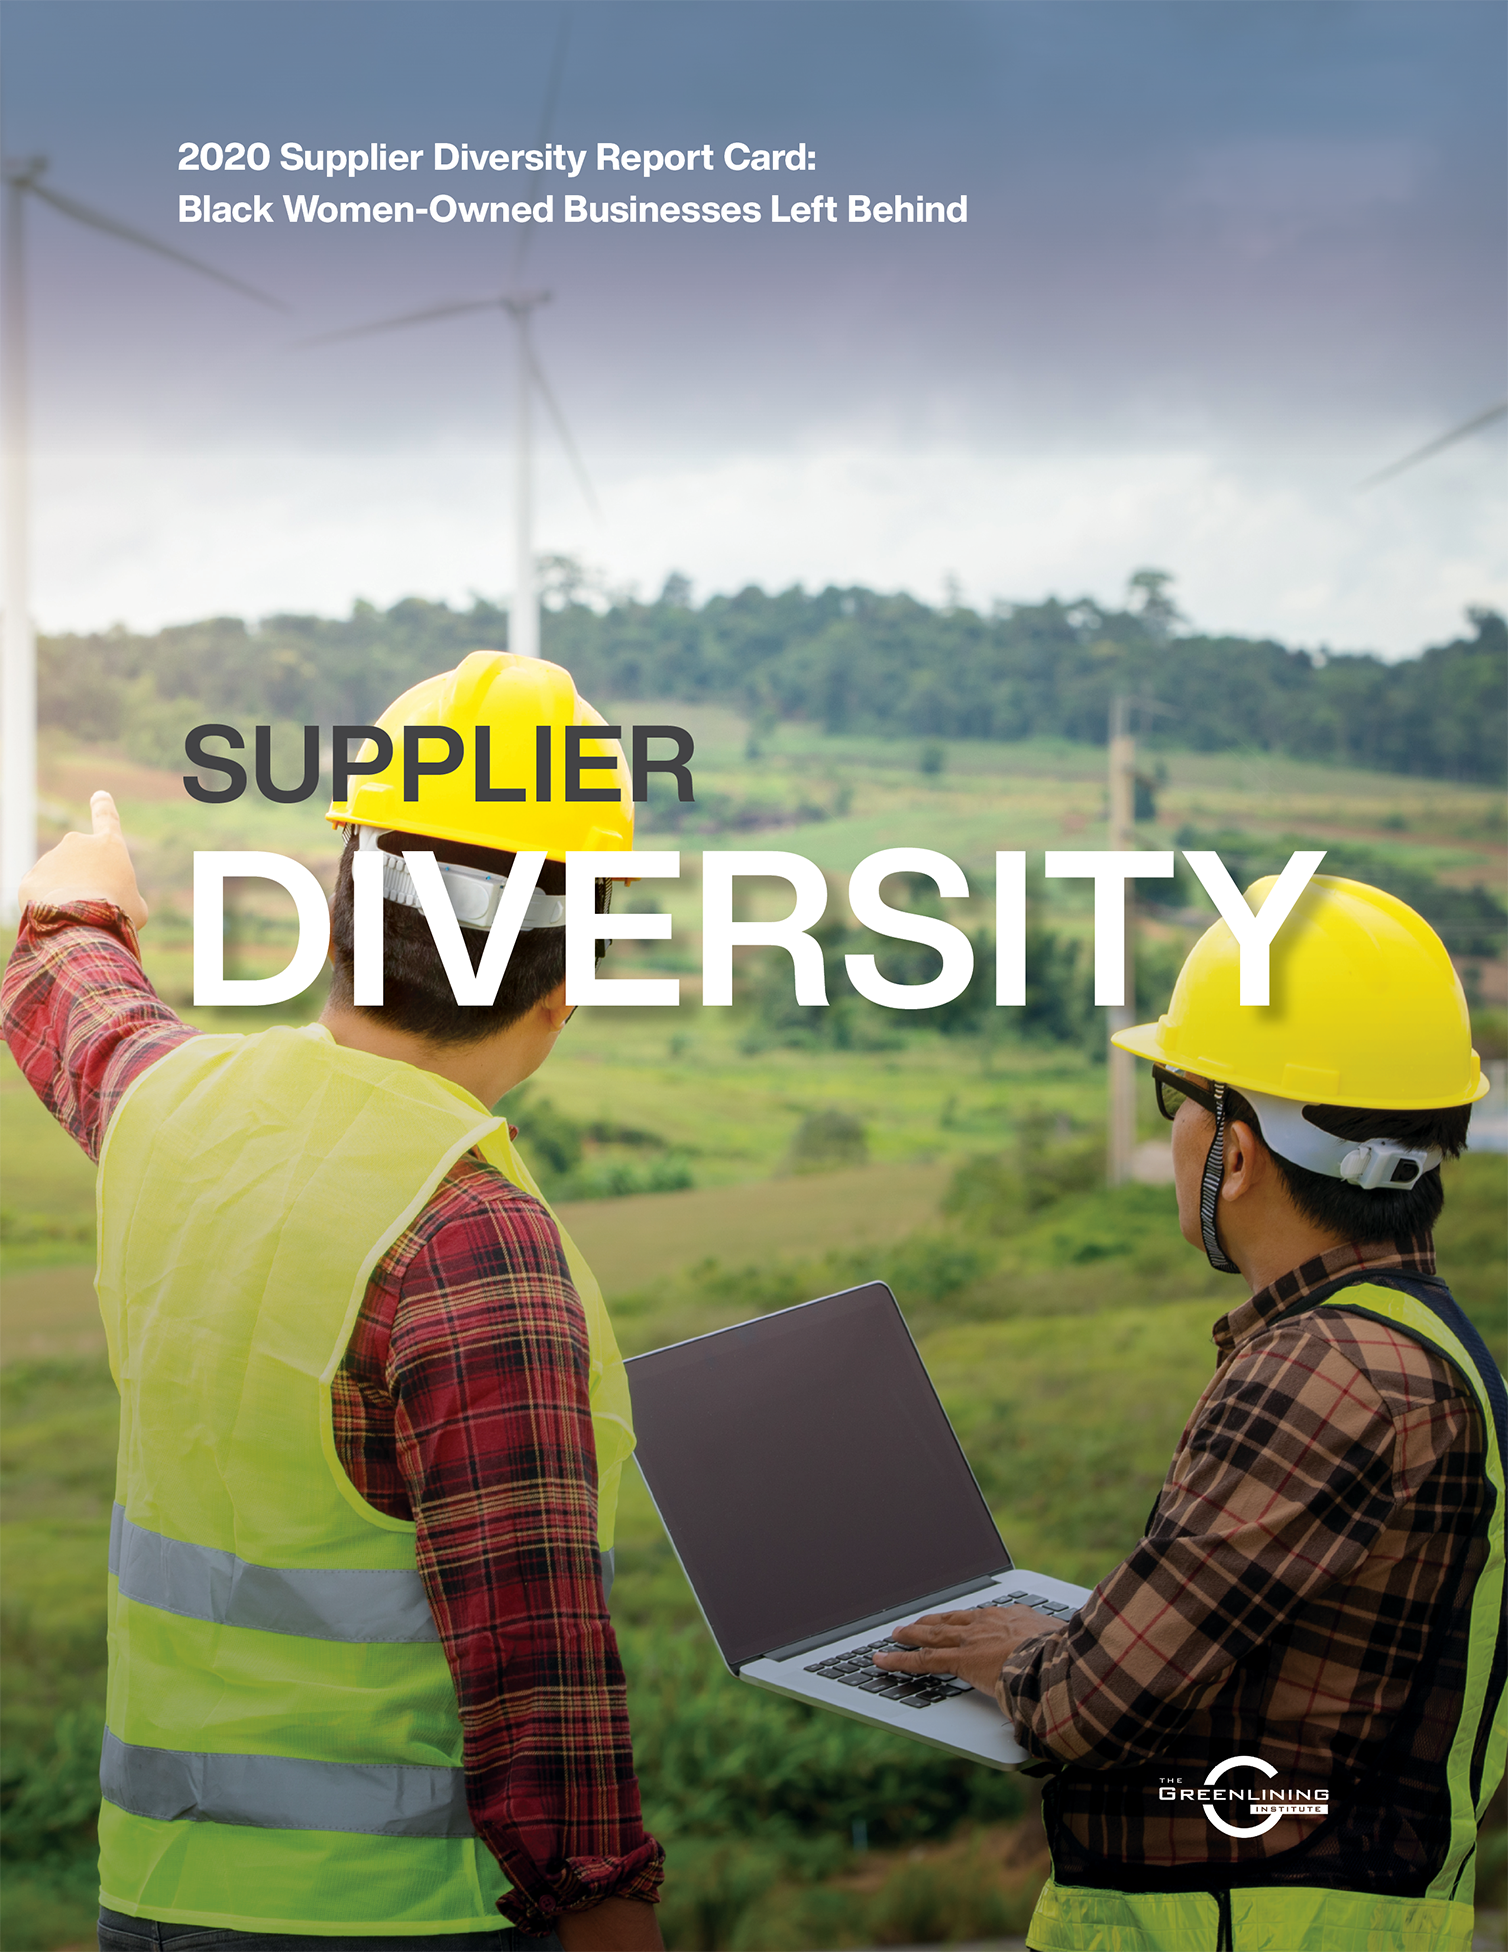 R4_2020 Supplier Diversity_Thumbnail